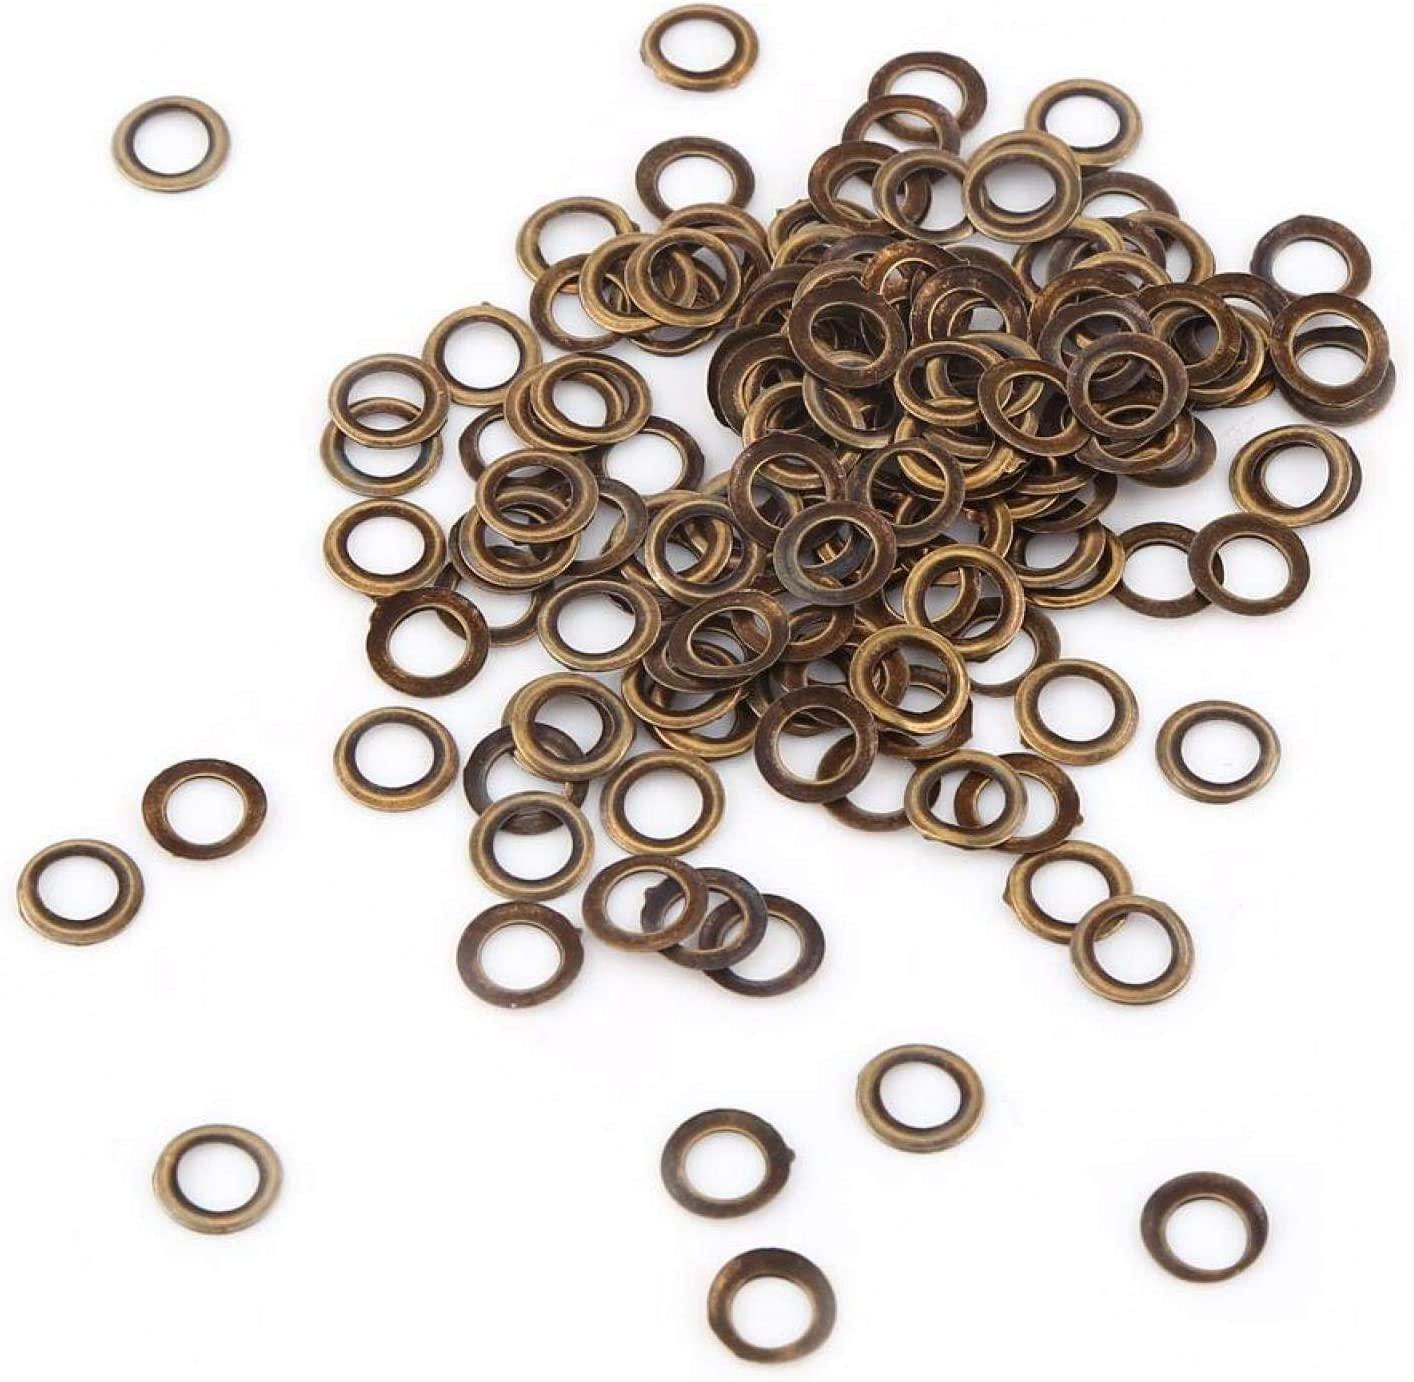 Durable Brass Eyelets, Metal Grommets, with Washers Small Clothe